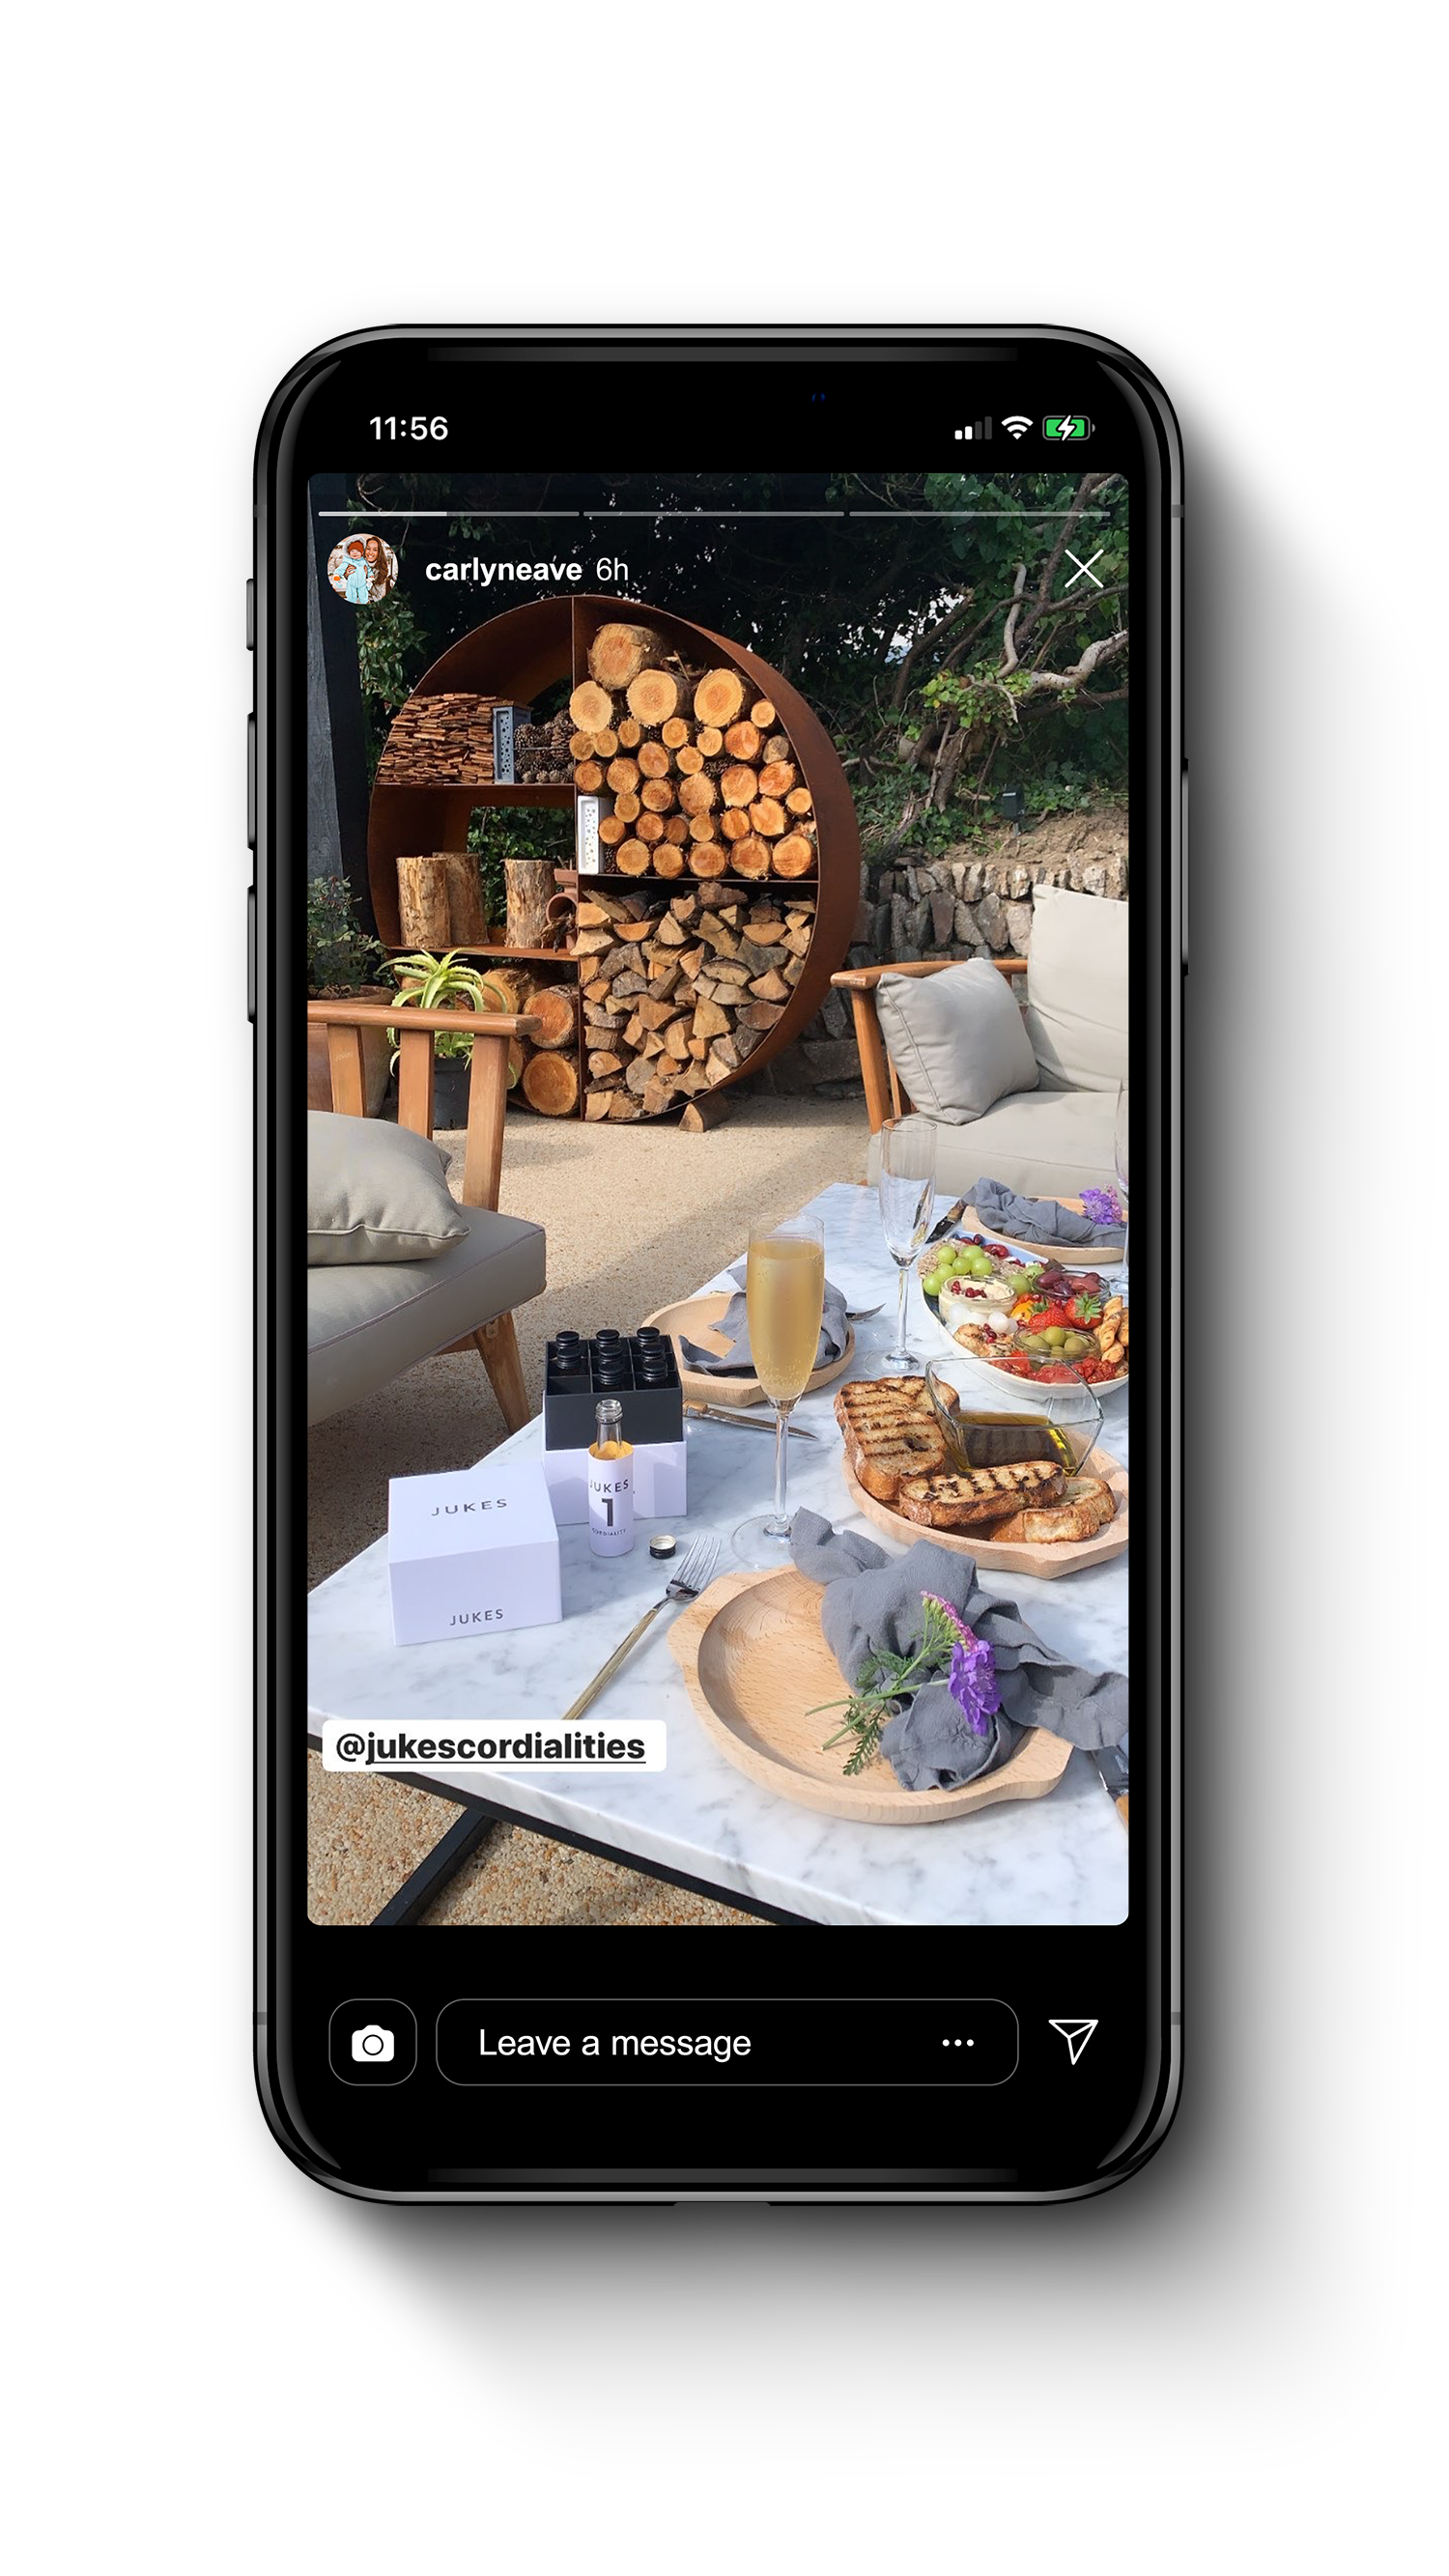 Iphone showing instagram story of Jukes products in use